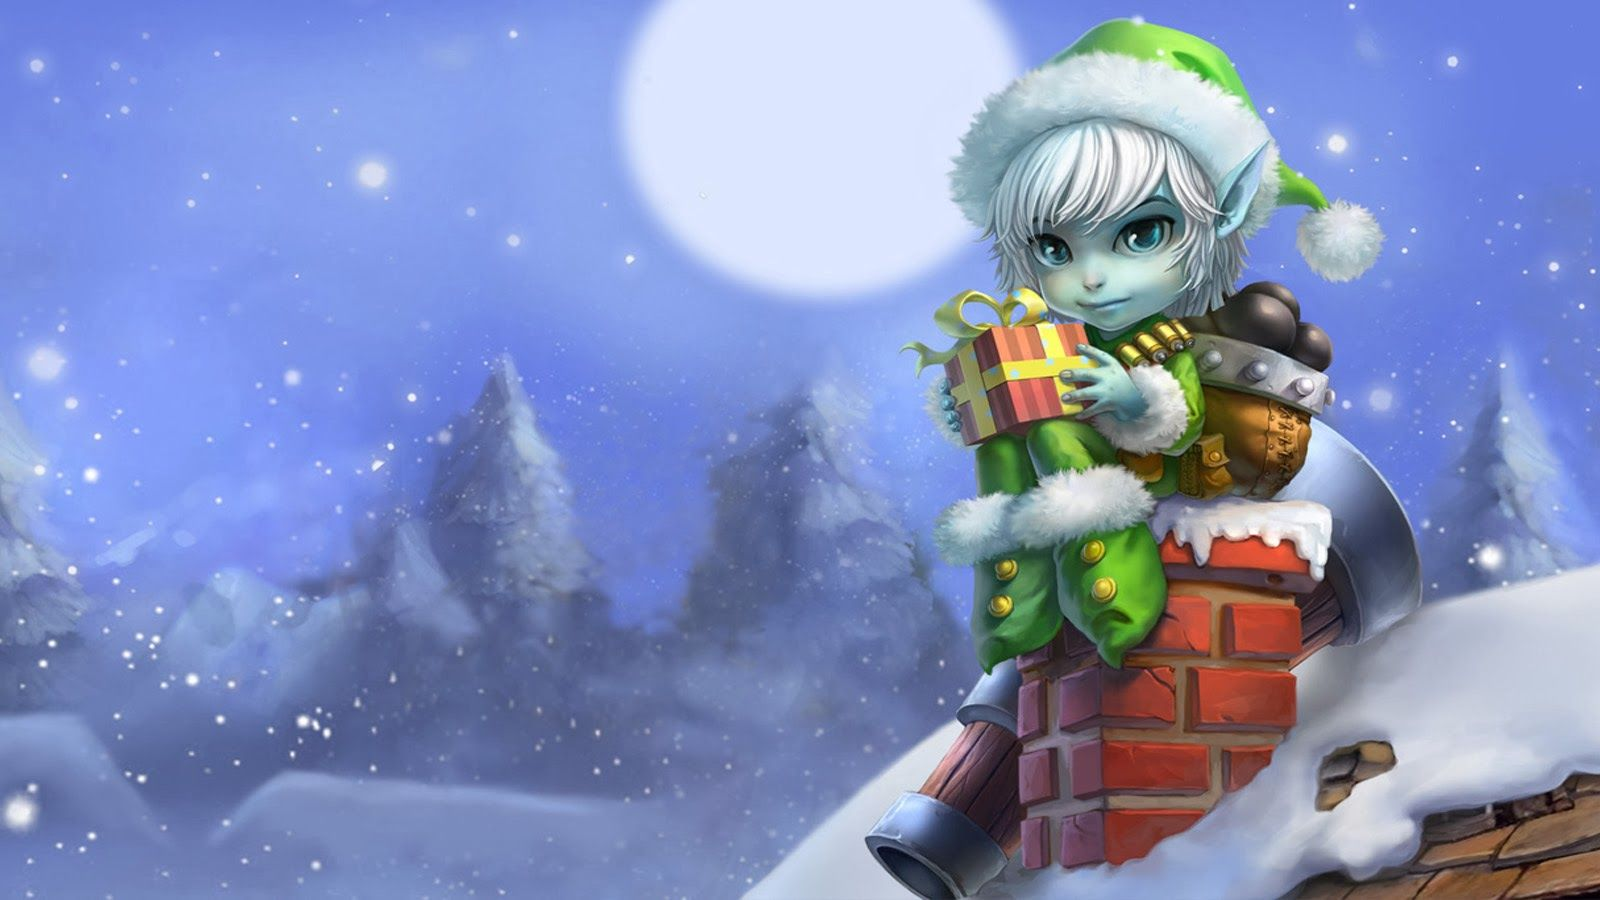 Christmas Elves Wallpapers   Top Christmas Elves Backgrounds 1600x900